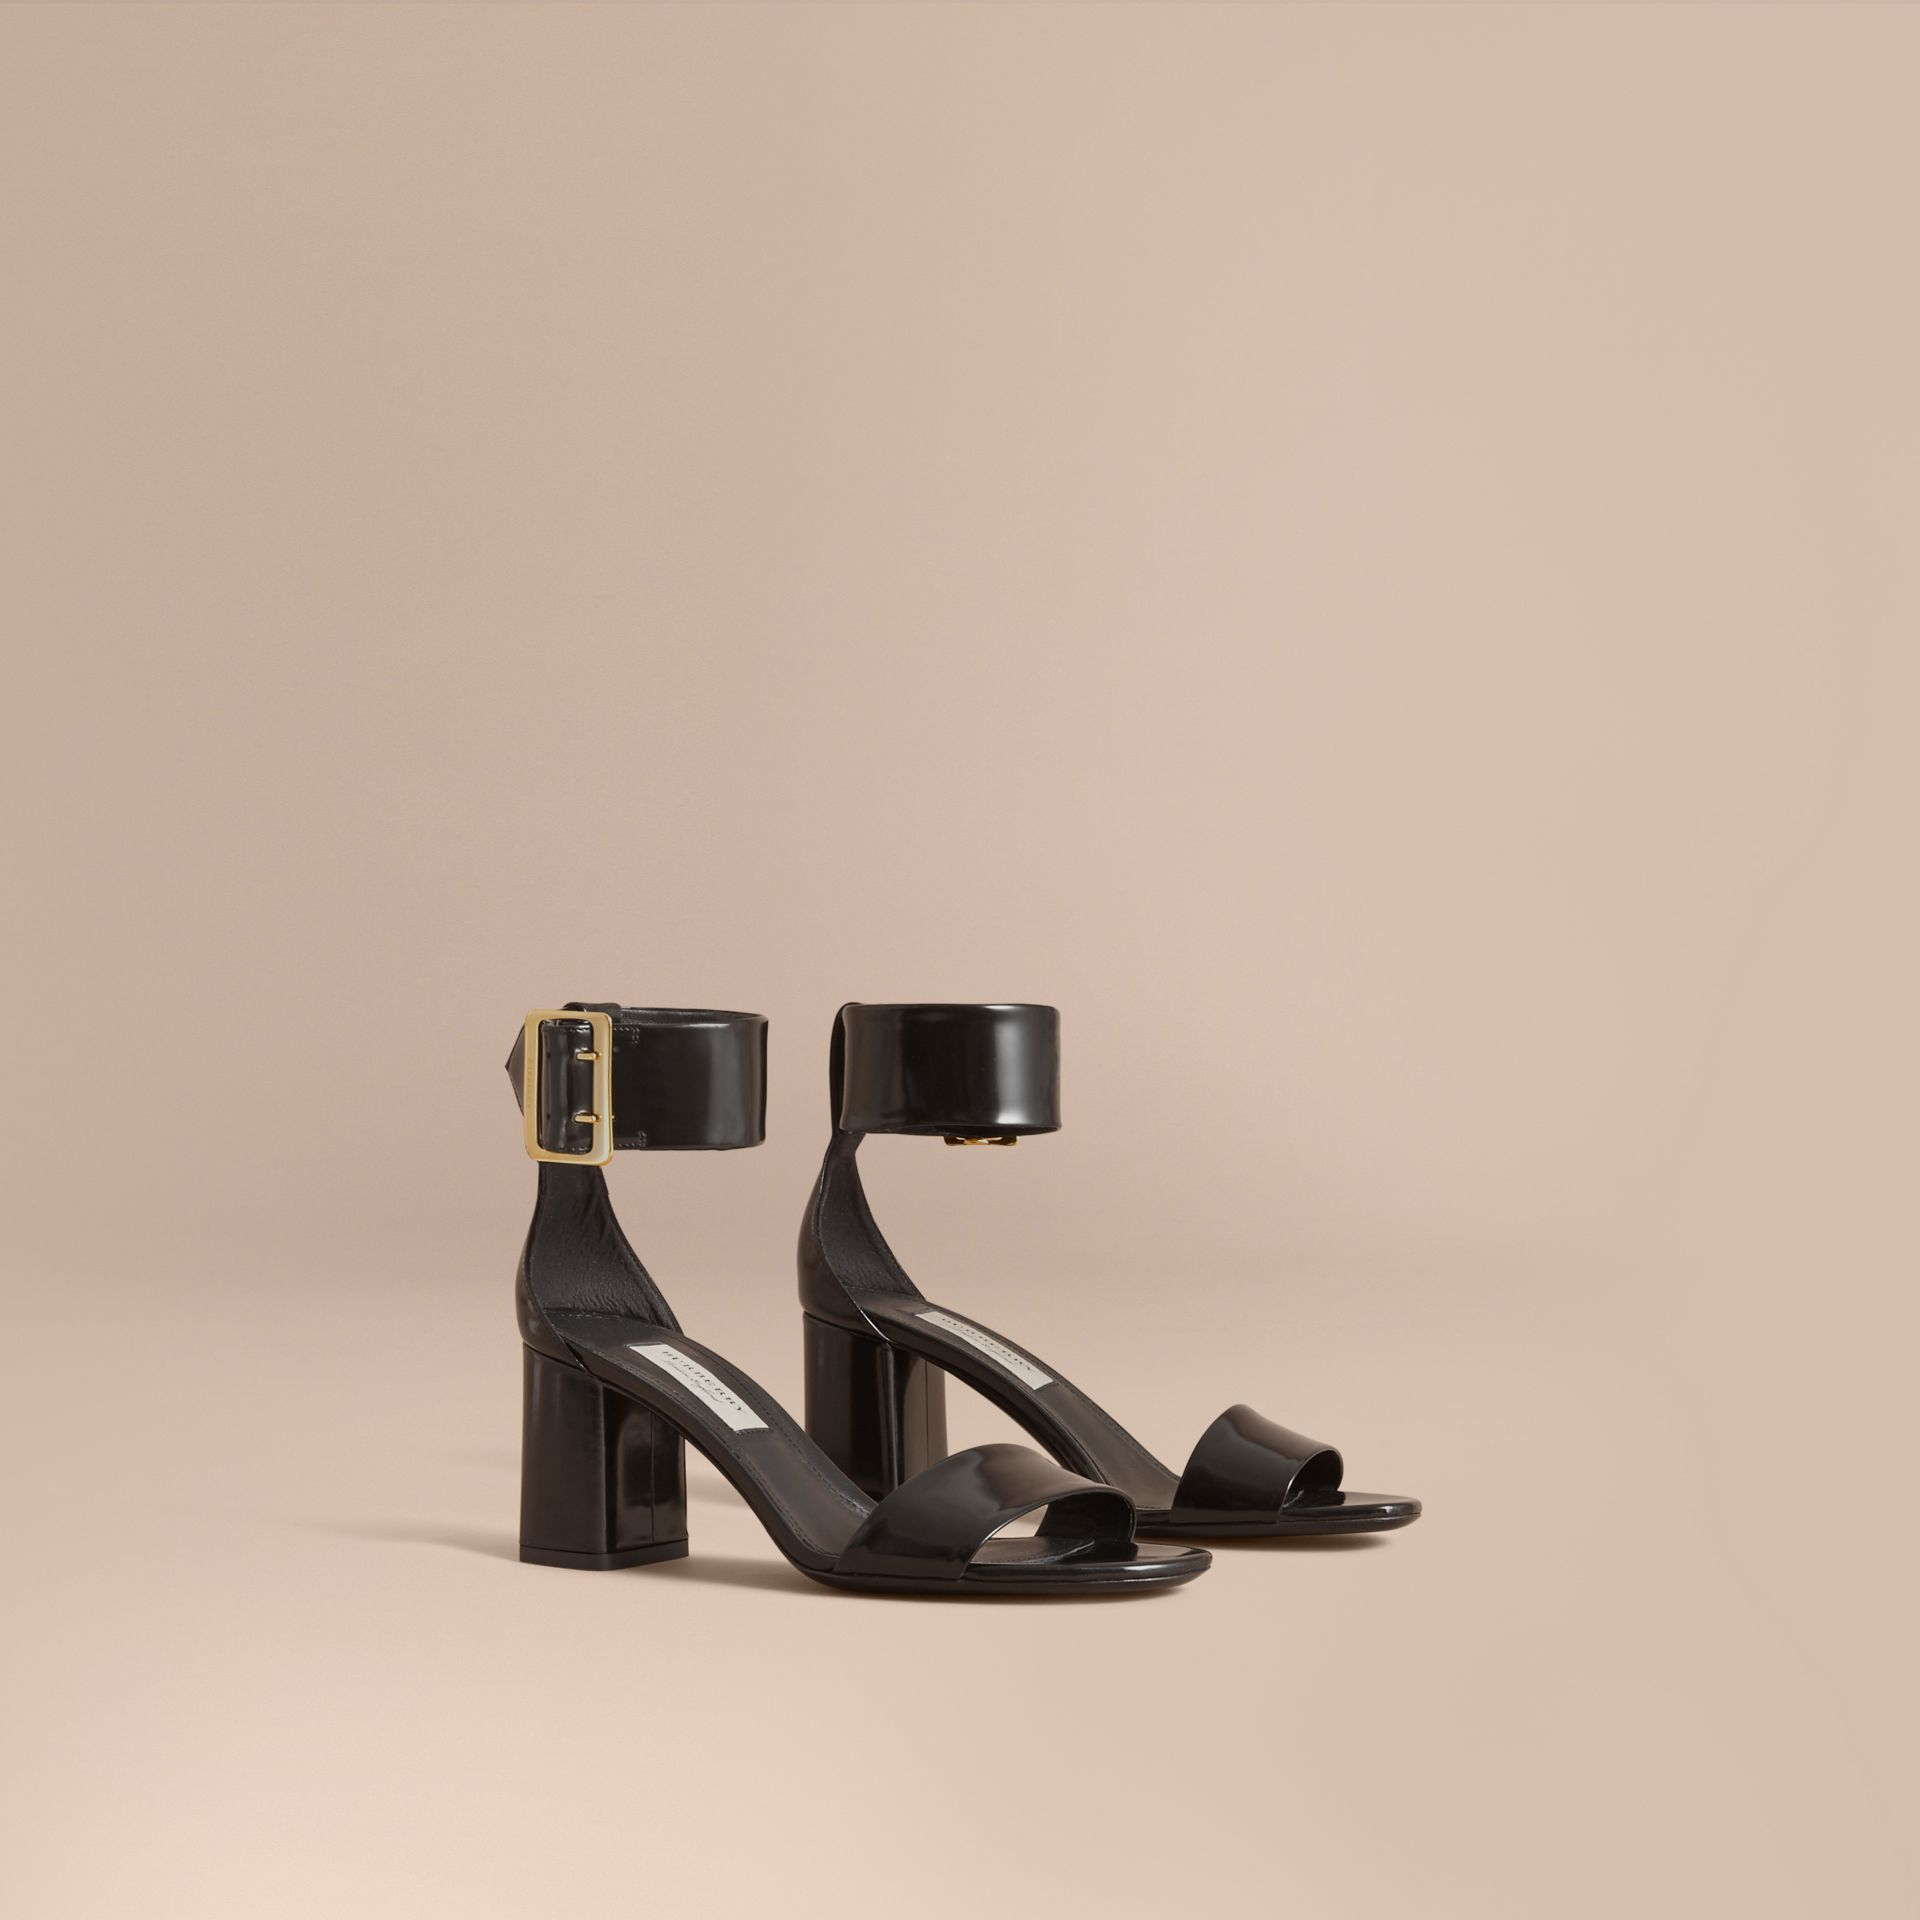 Buckle Detail Patent Leather Sandals in Black - Women | Burberry Australia - gallery image 1